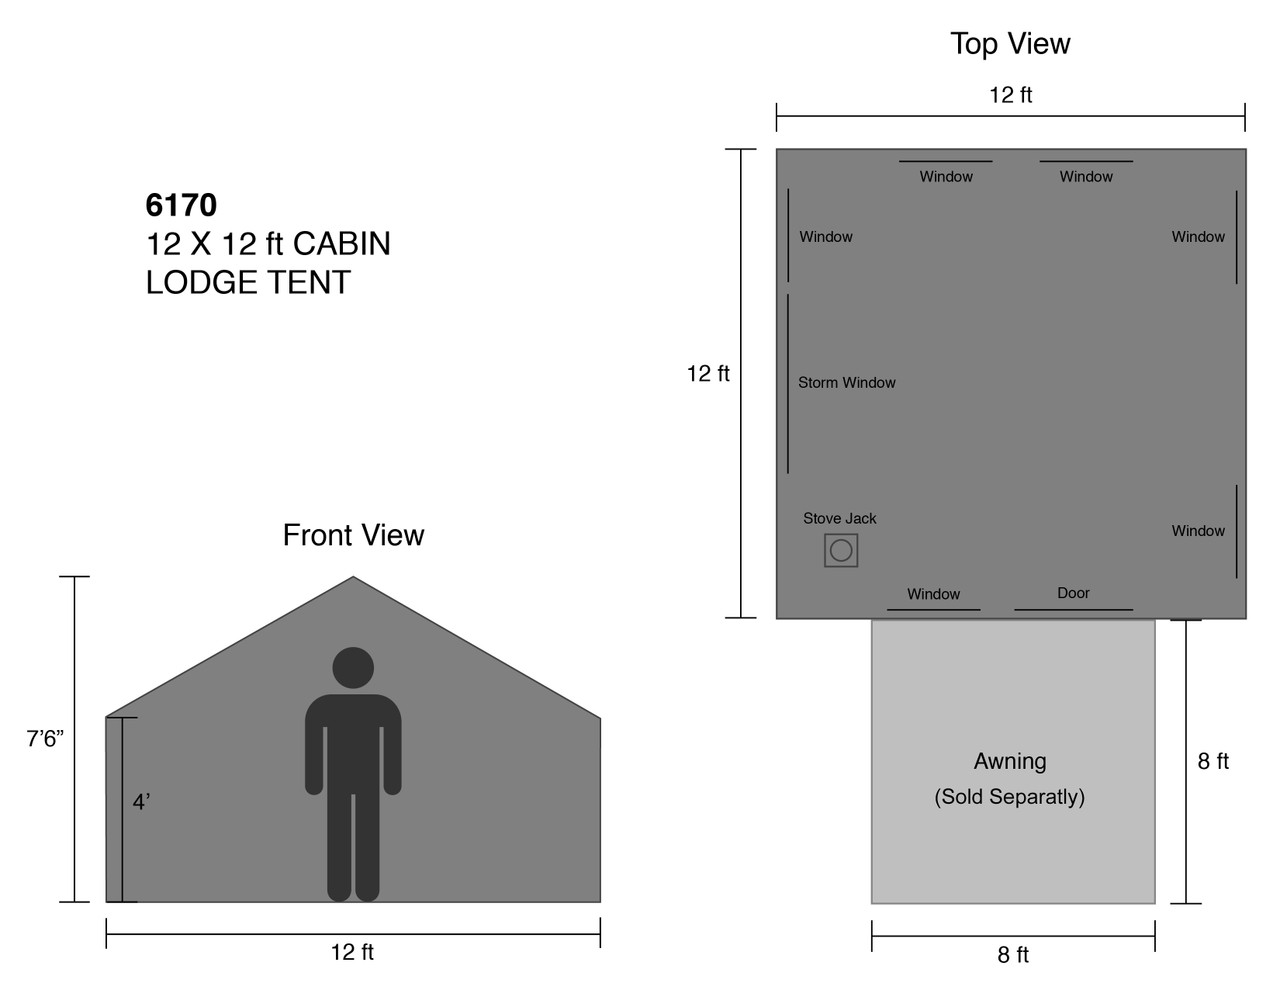 12x12 ft. Cabin Lodge Tent